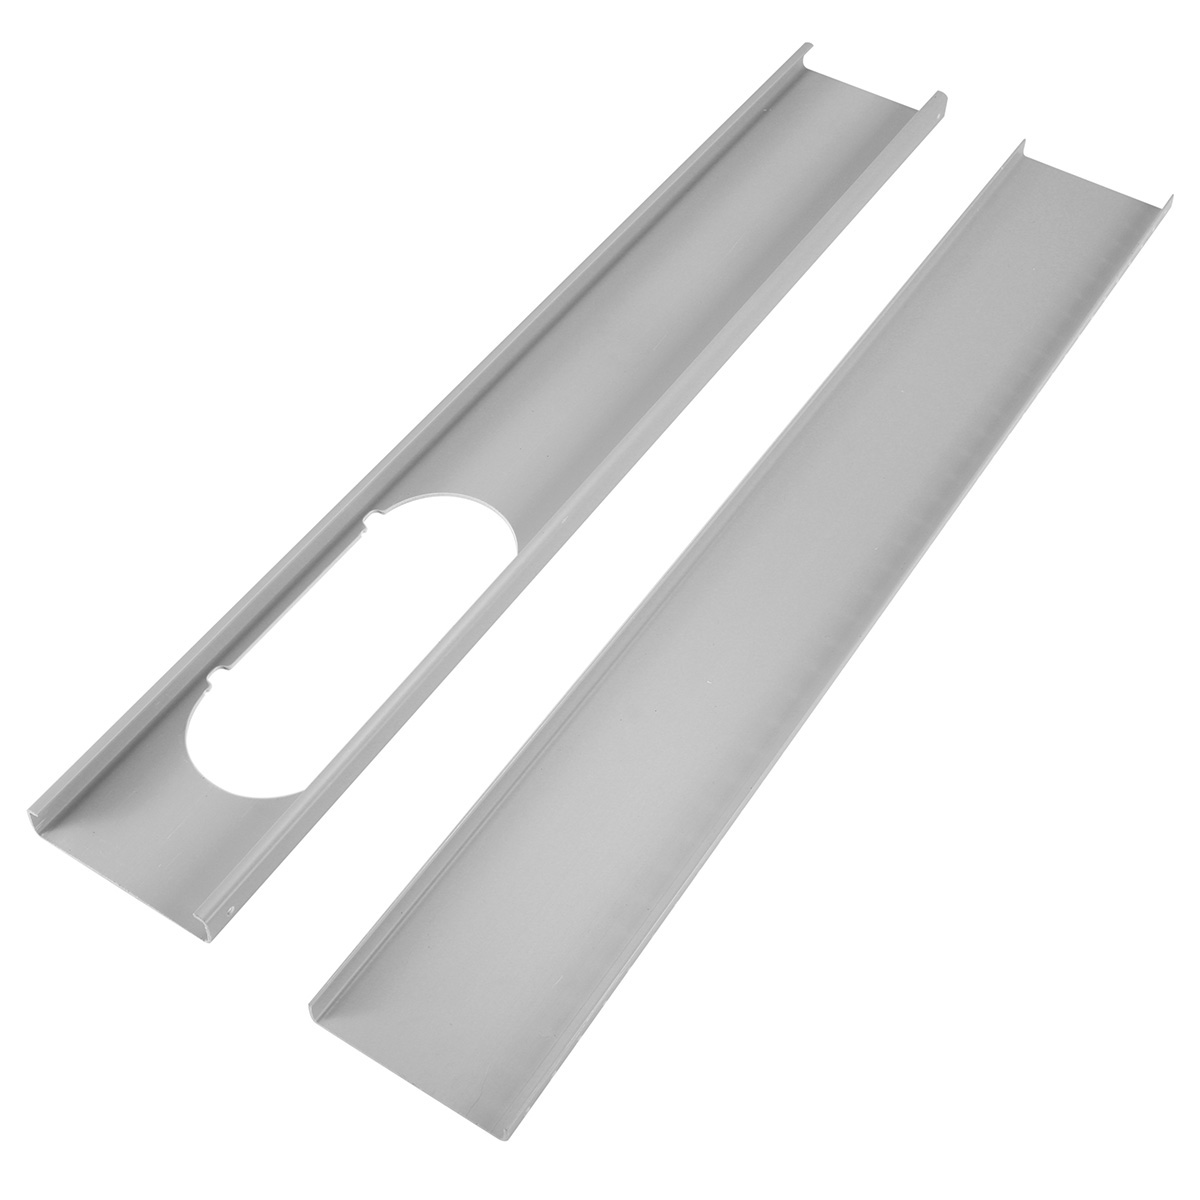 2x Adjustable Window Slide Kit Plate Spare Parts For Portable Air Conditioner